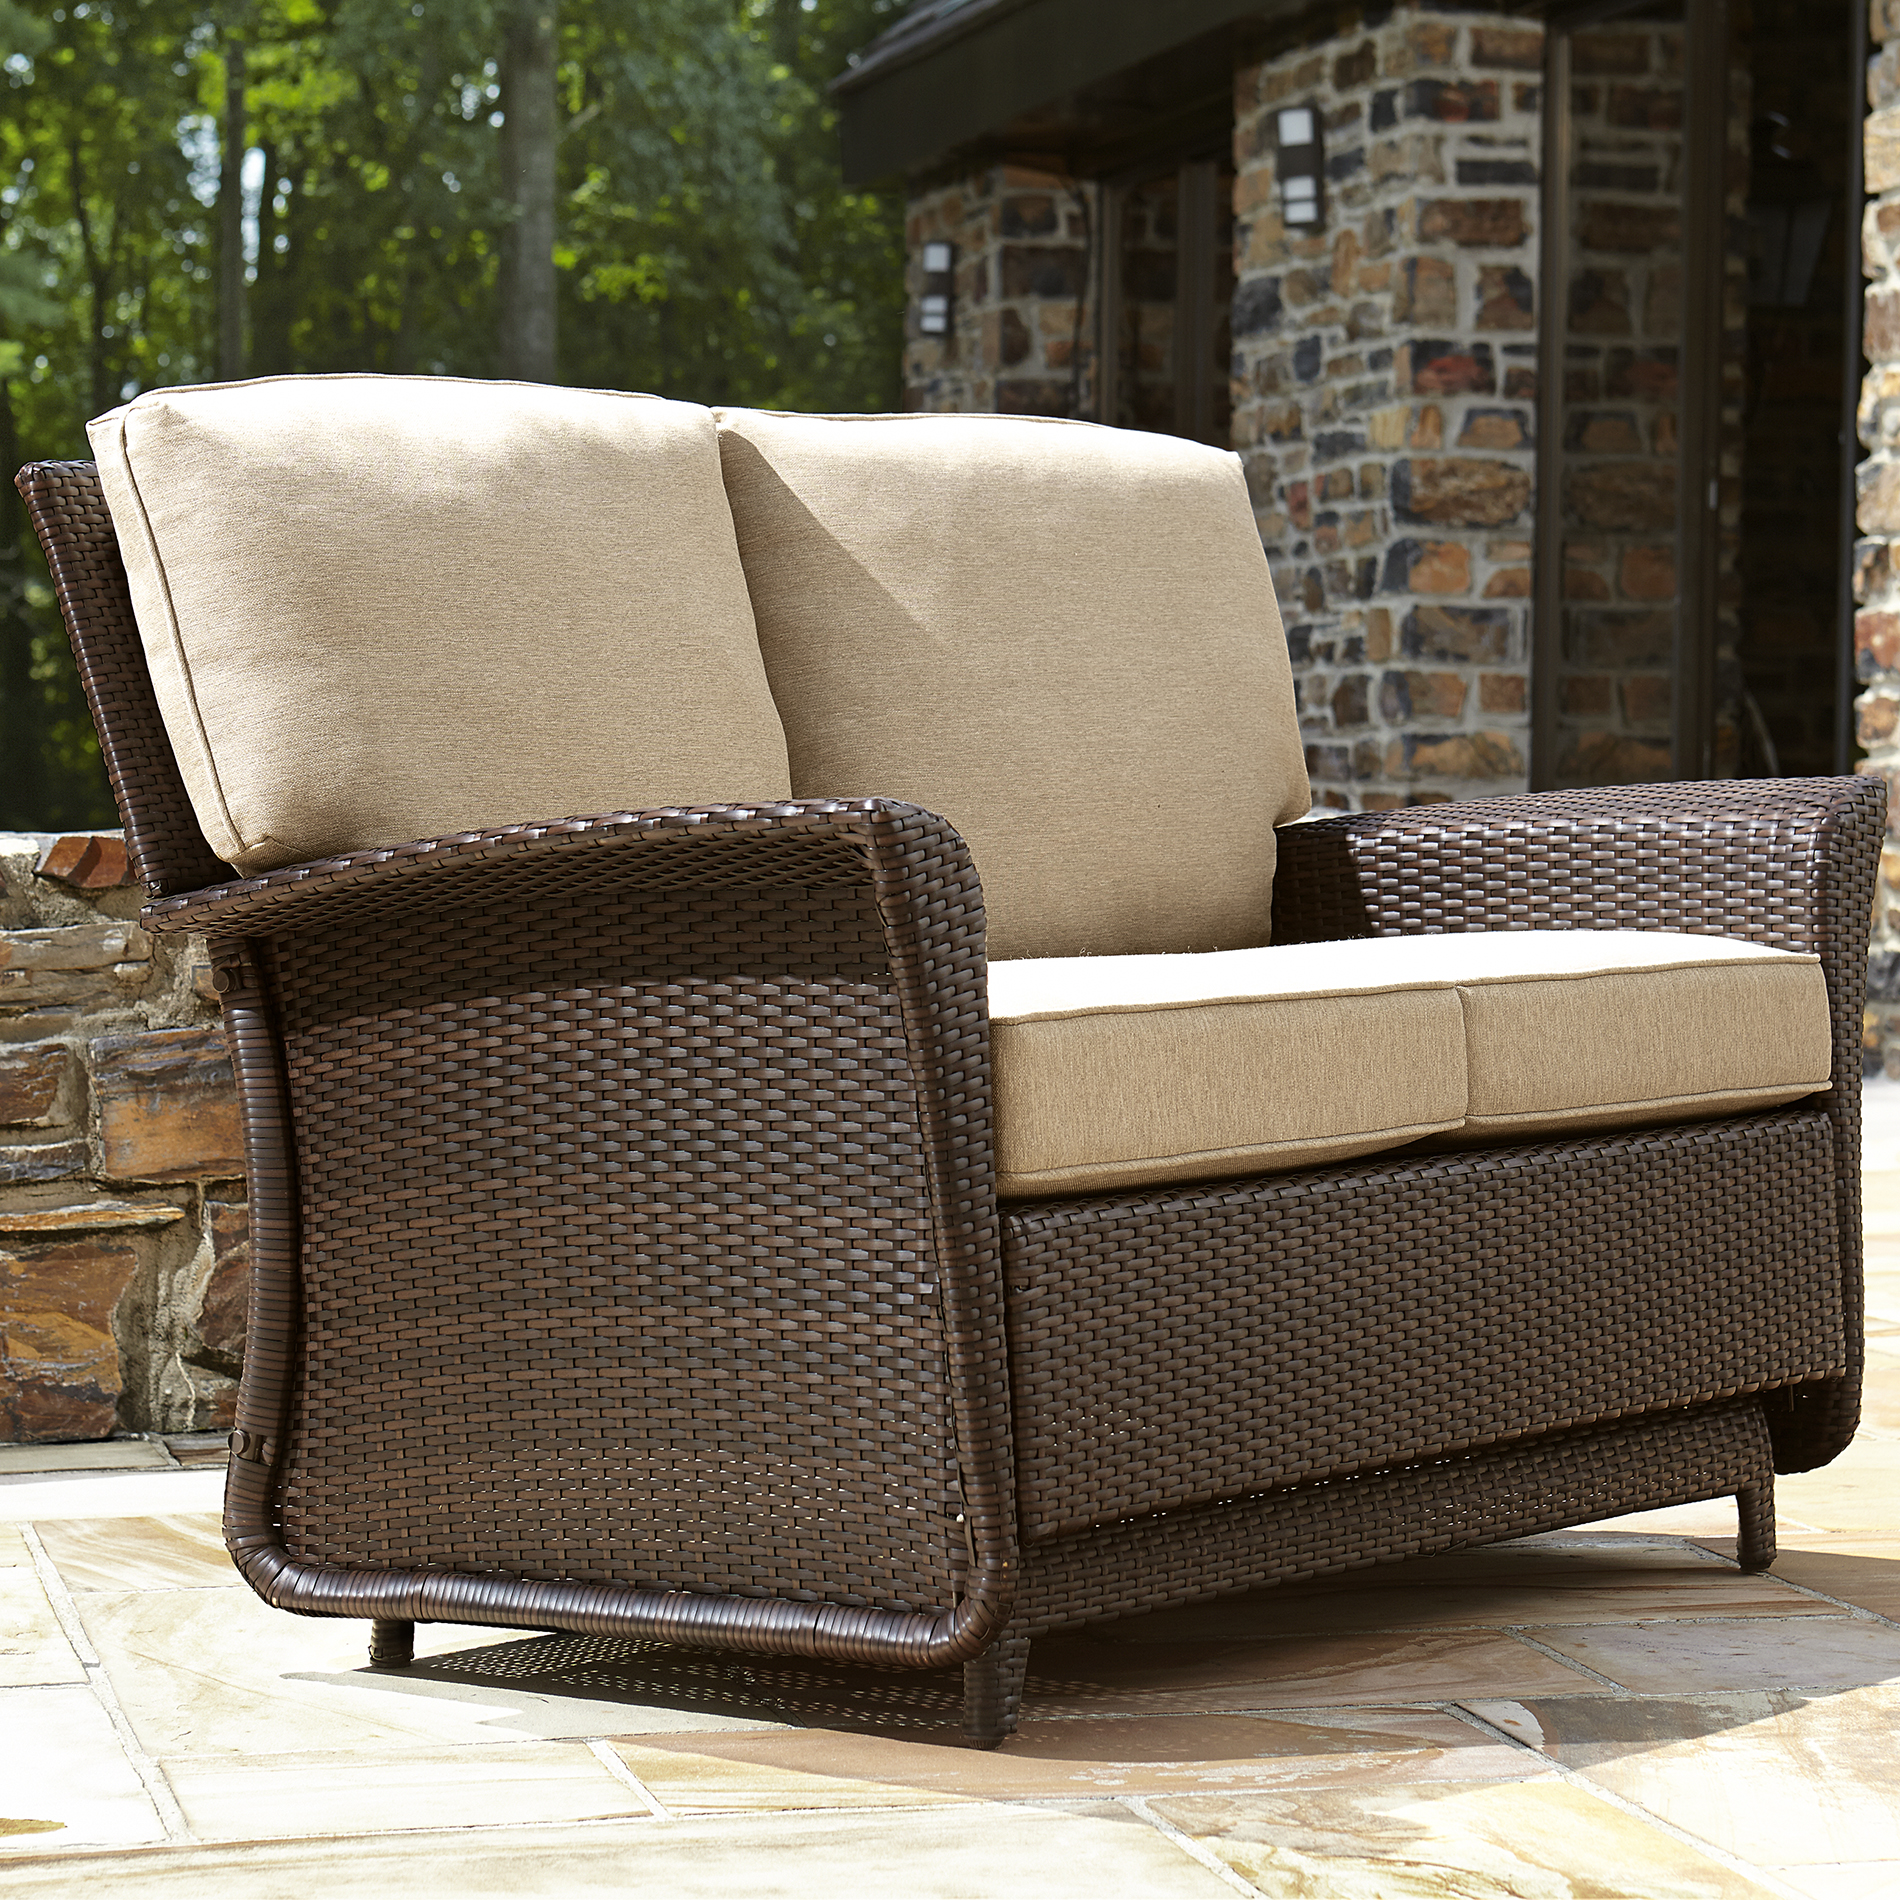 Exceptionnel Ty Pennington Style Parkside Double Glider   Limited Availability   Outdoor  Living   Patio Furniture   Outdoor Seating